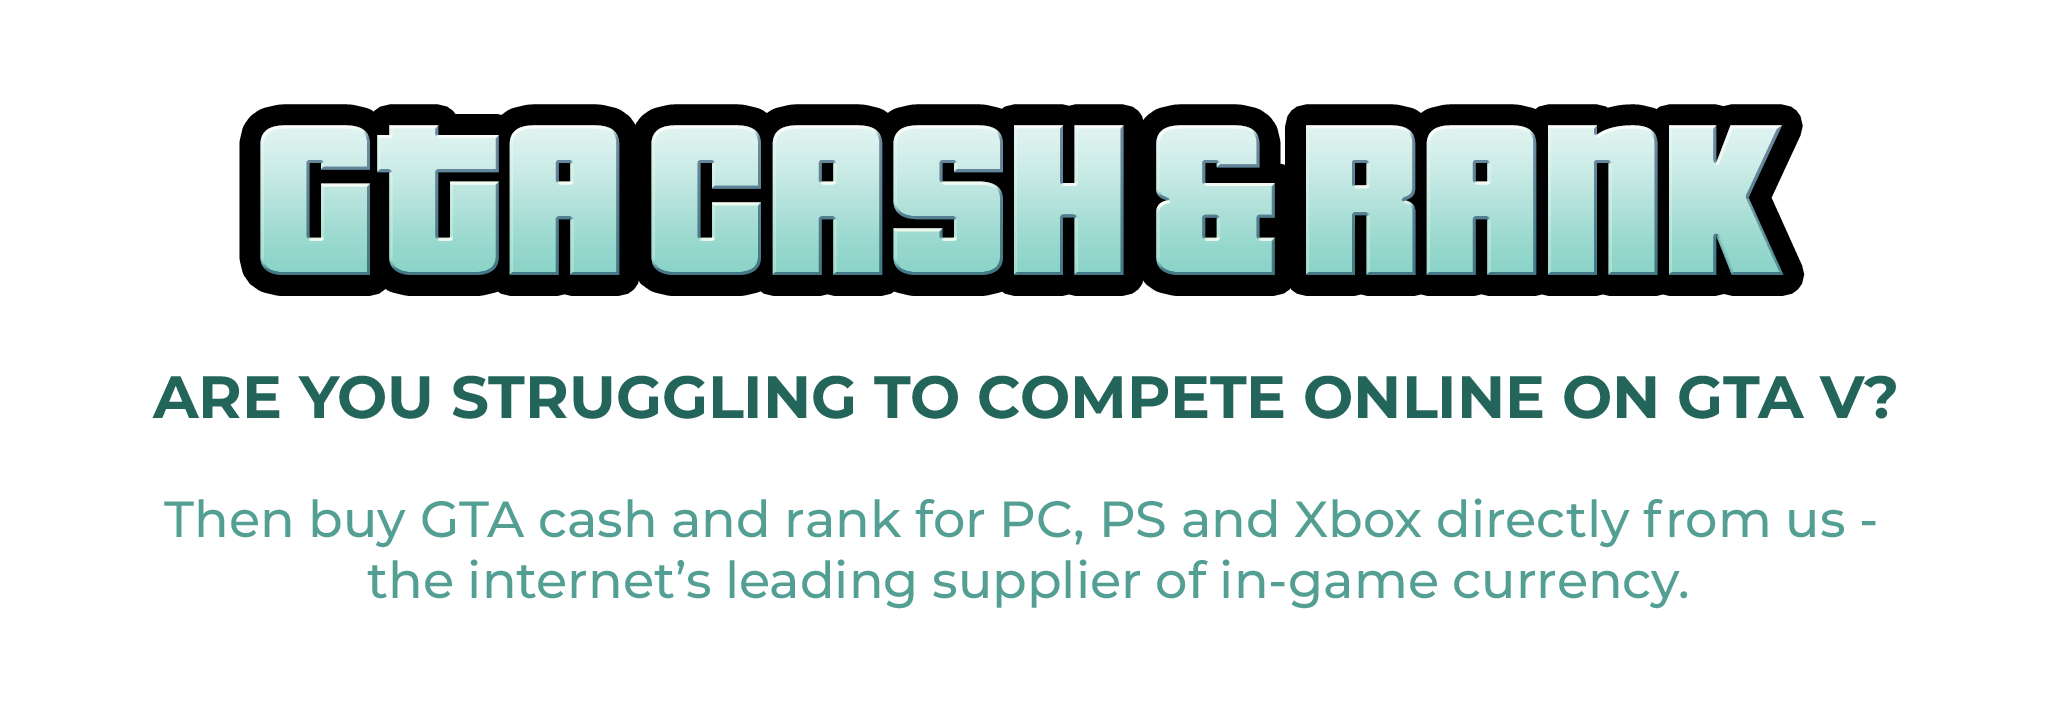 GTA Cash & Rank promo